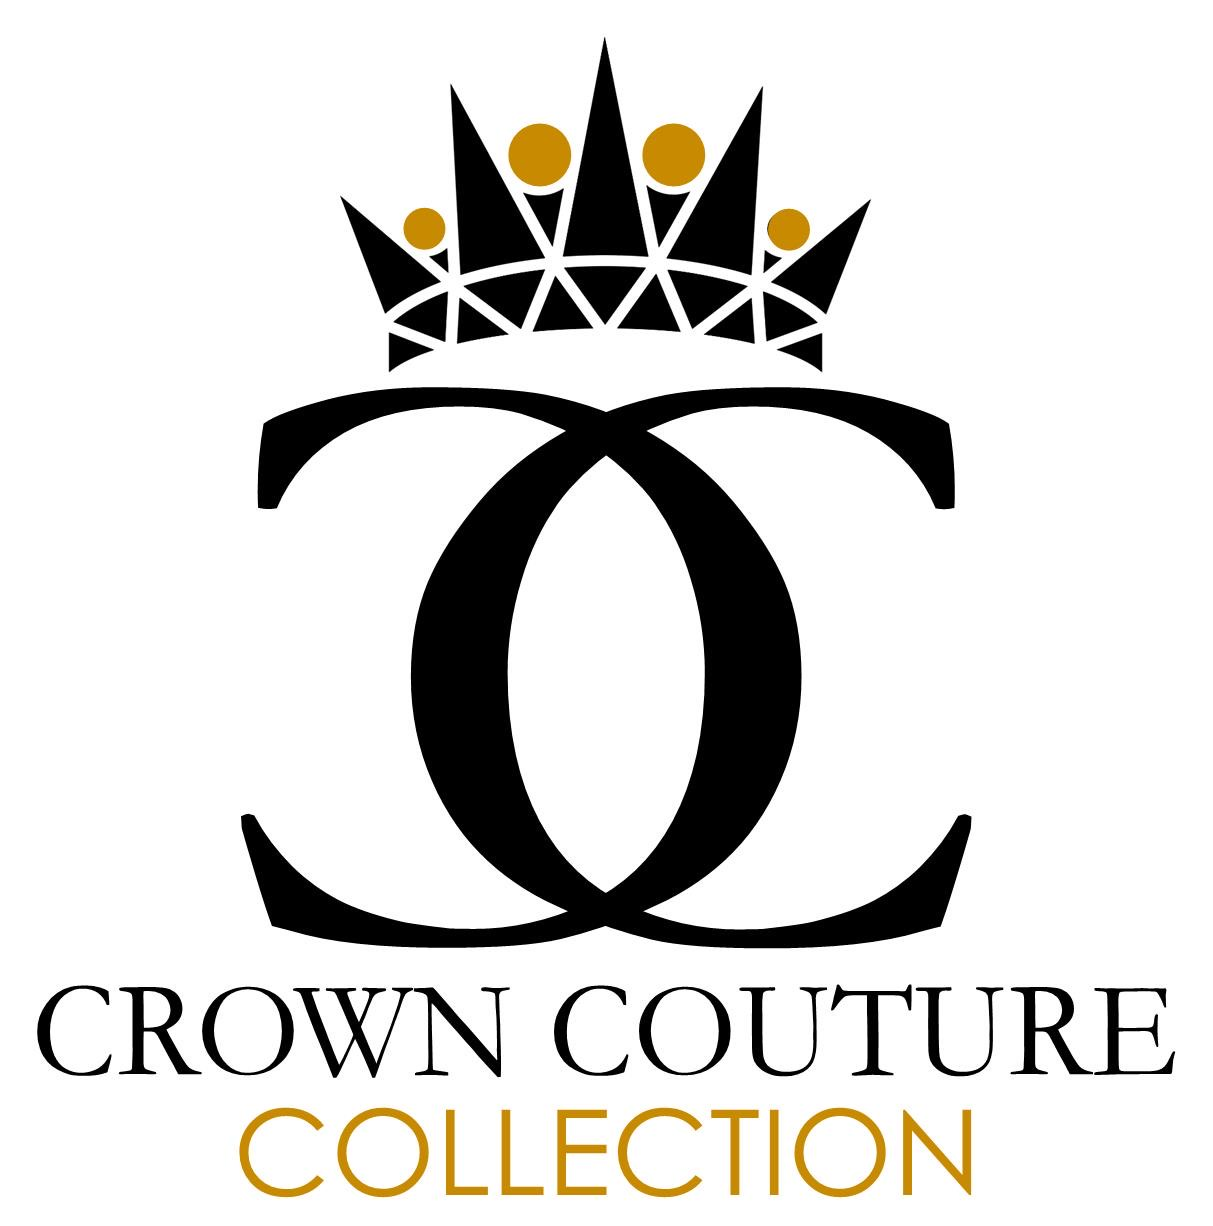 Crown Couture Collecton